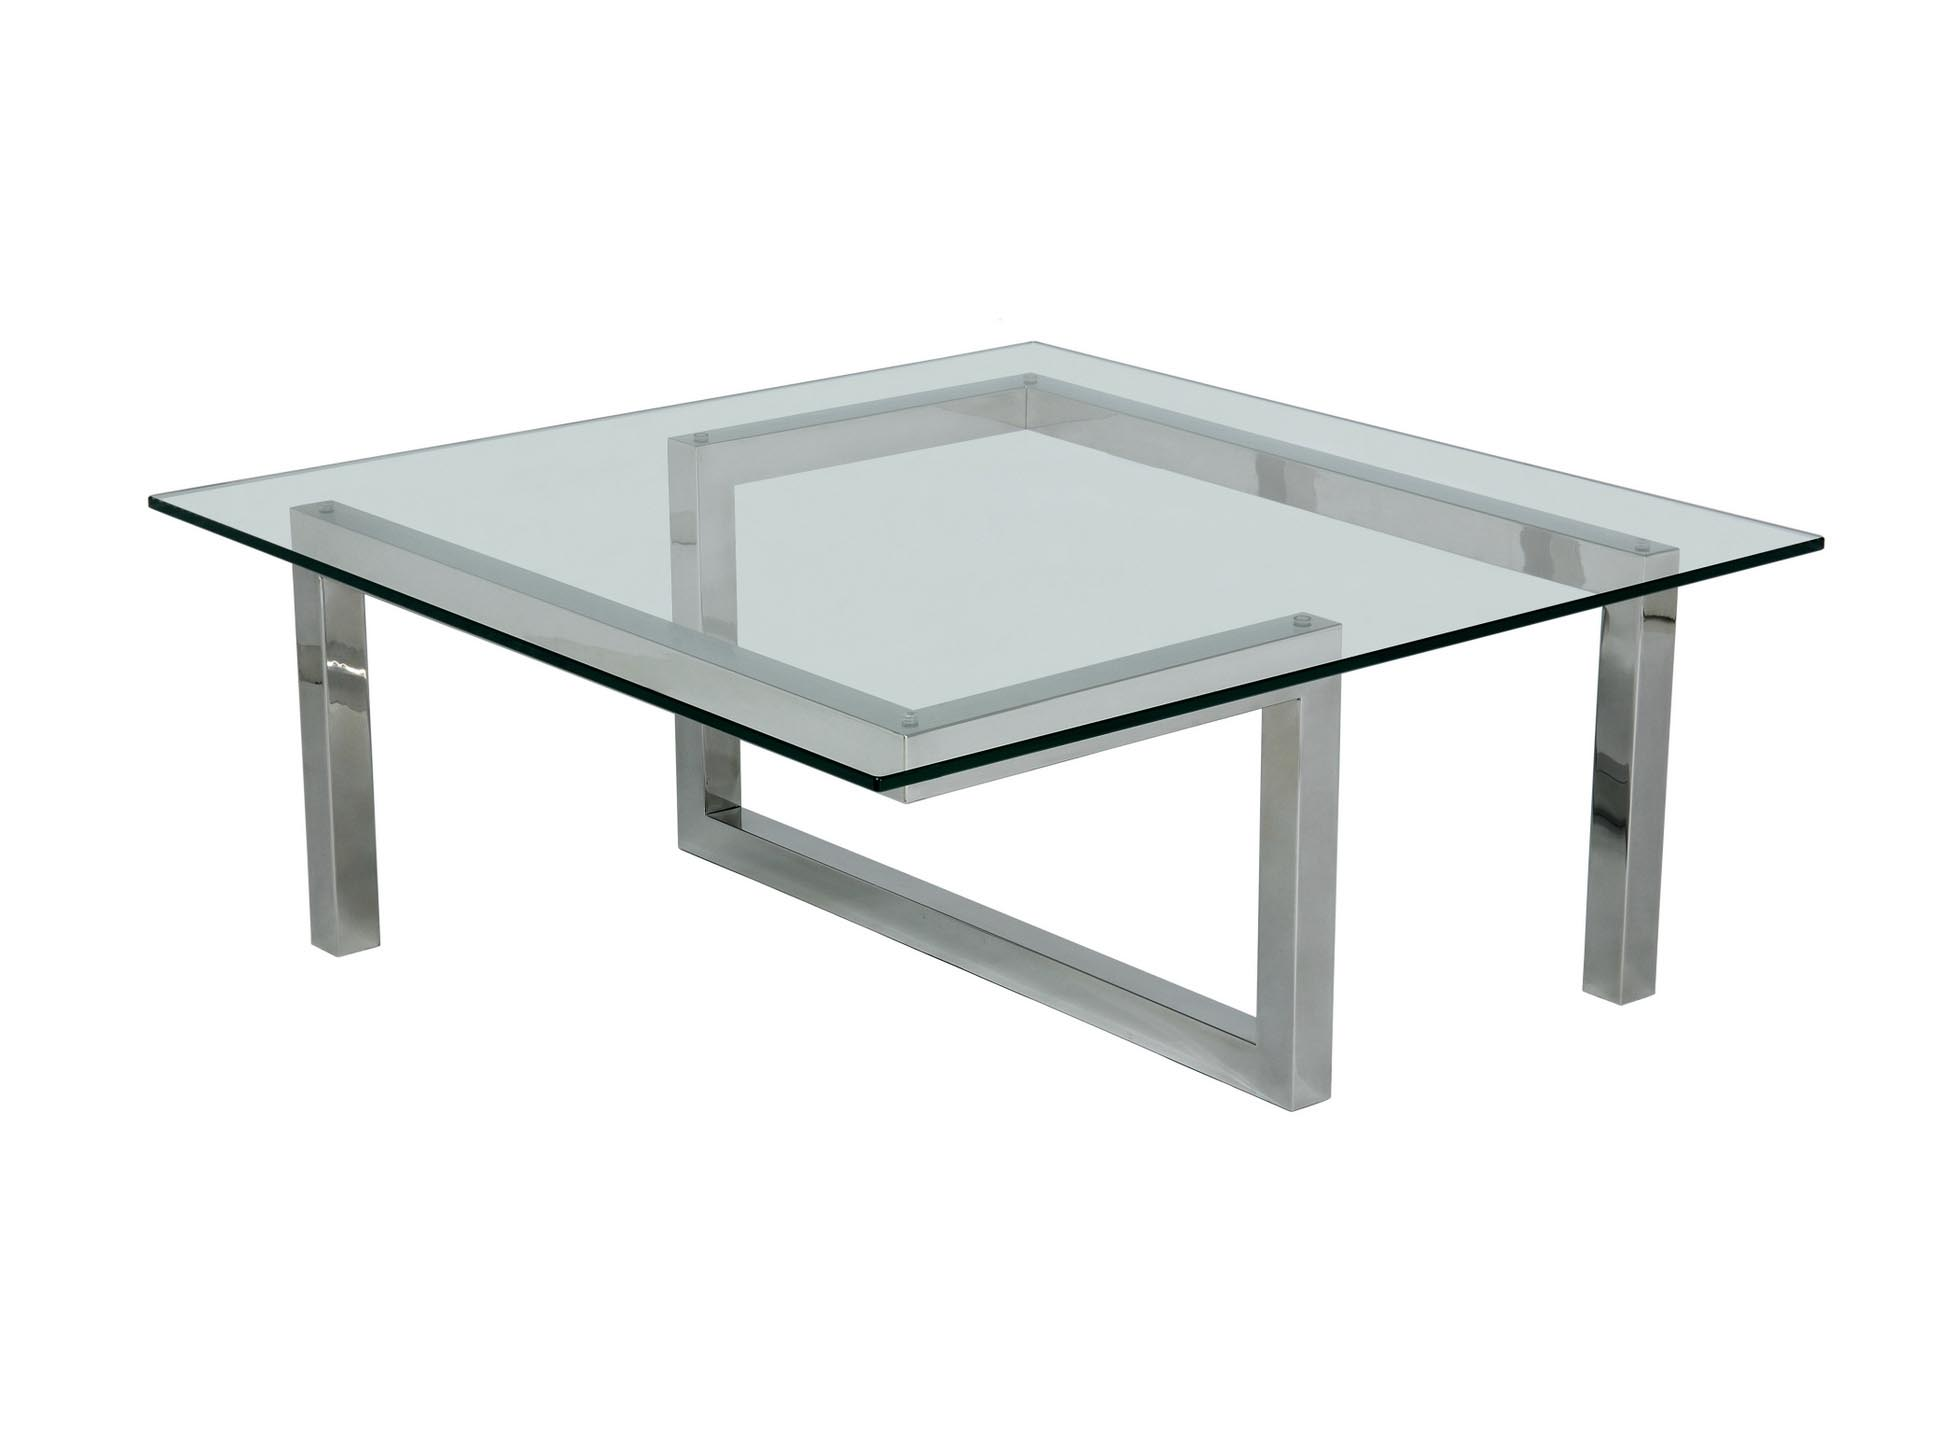 Folding Stainless Steel Table picture on stainless steel and glass coffee tables with Folding Stainless Steel Table, Folding Table d52c02f807727410e499dd1c48deedfd